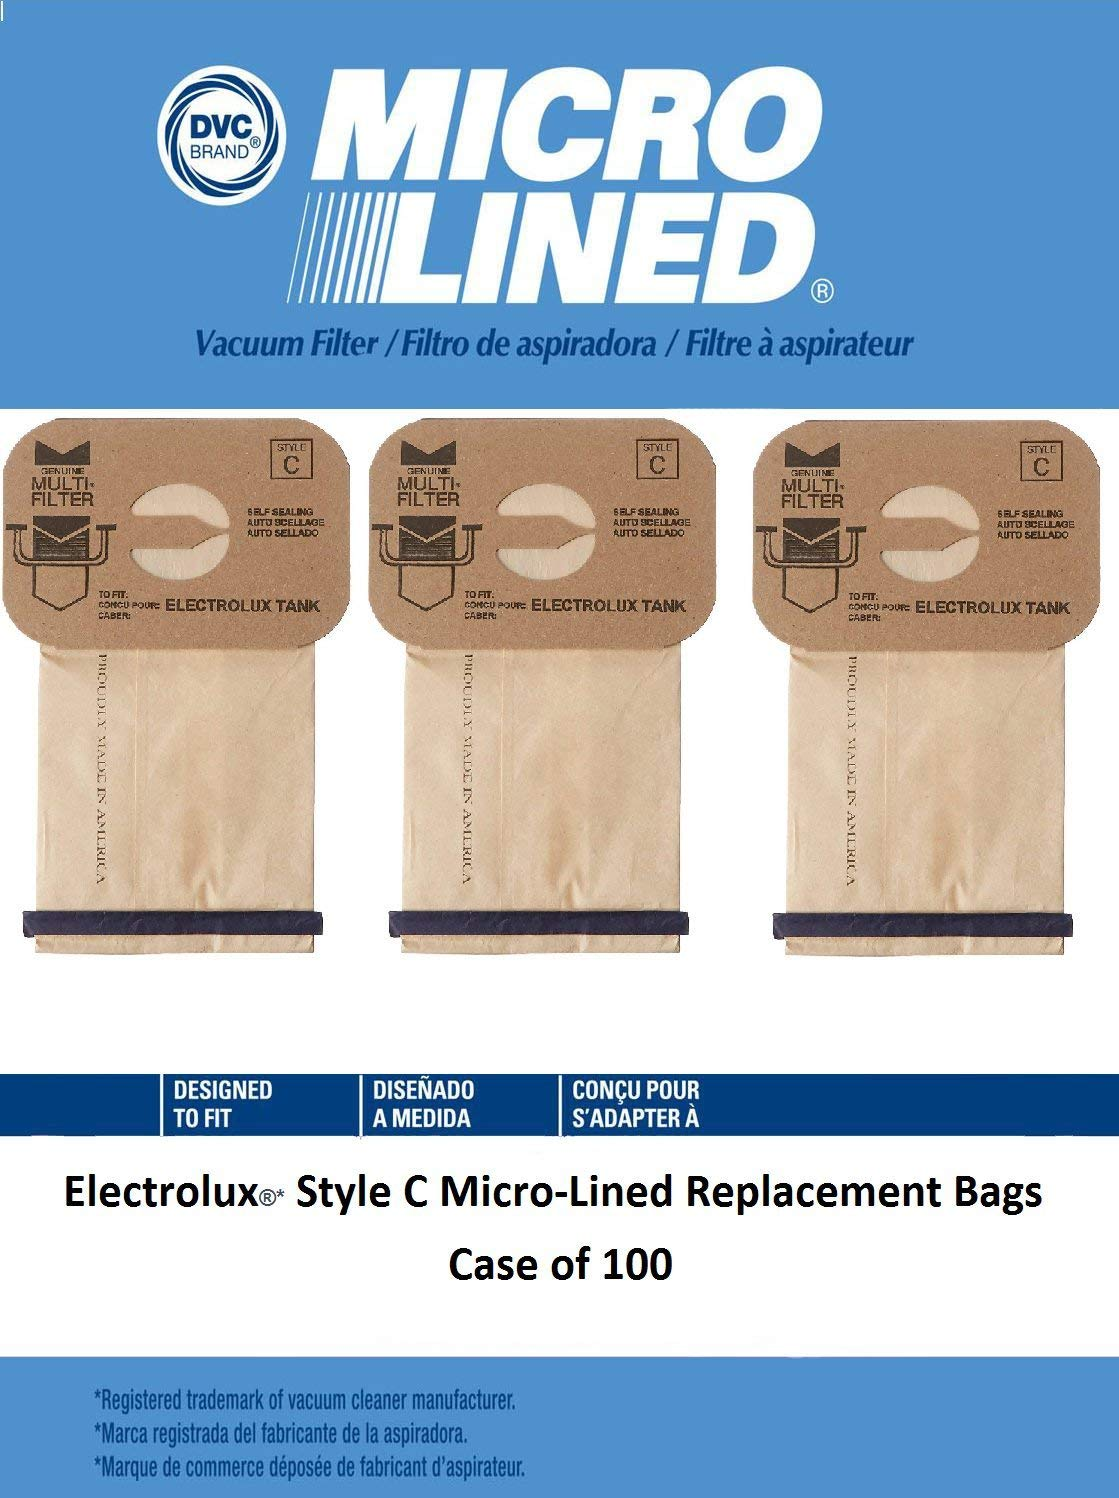 DVC Micro-Lined DVC Created Electrolux Style C Bags. Allergy Micro filtration Vacuum Bags. Case of 100